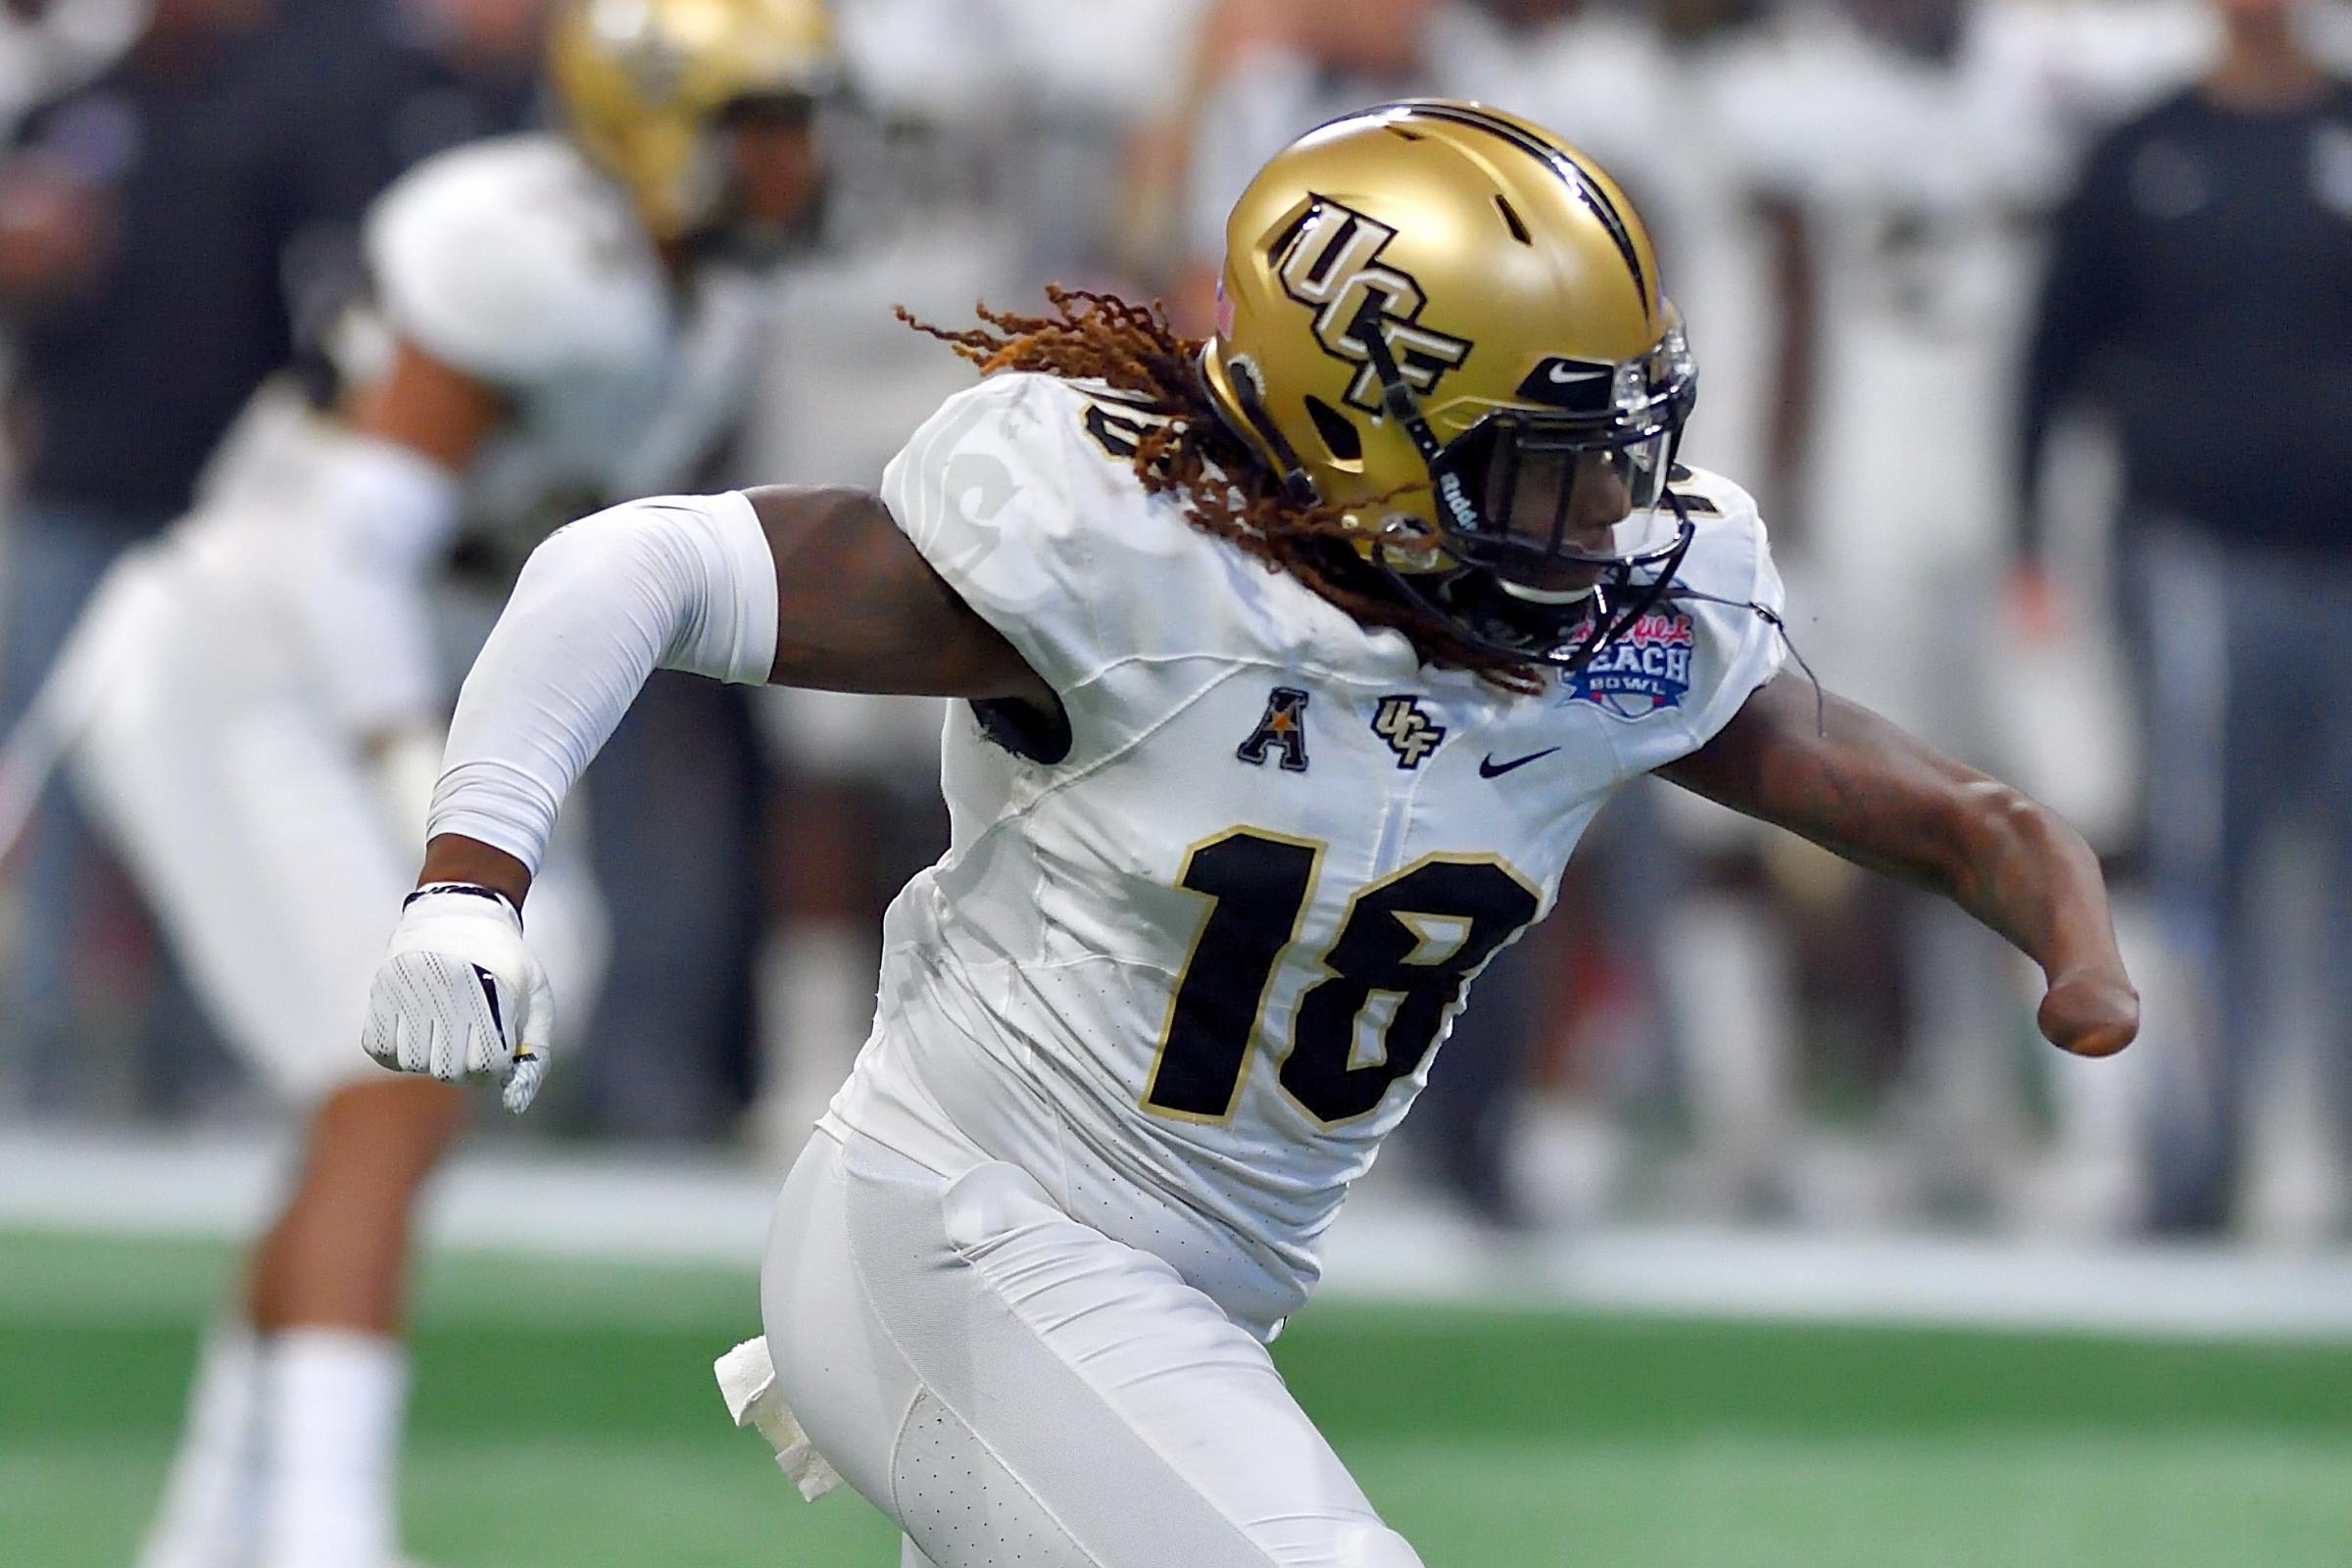 Shaquem Griffin was a star at UCF (UCF Knights)